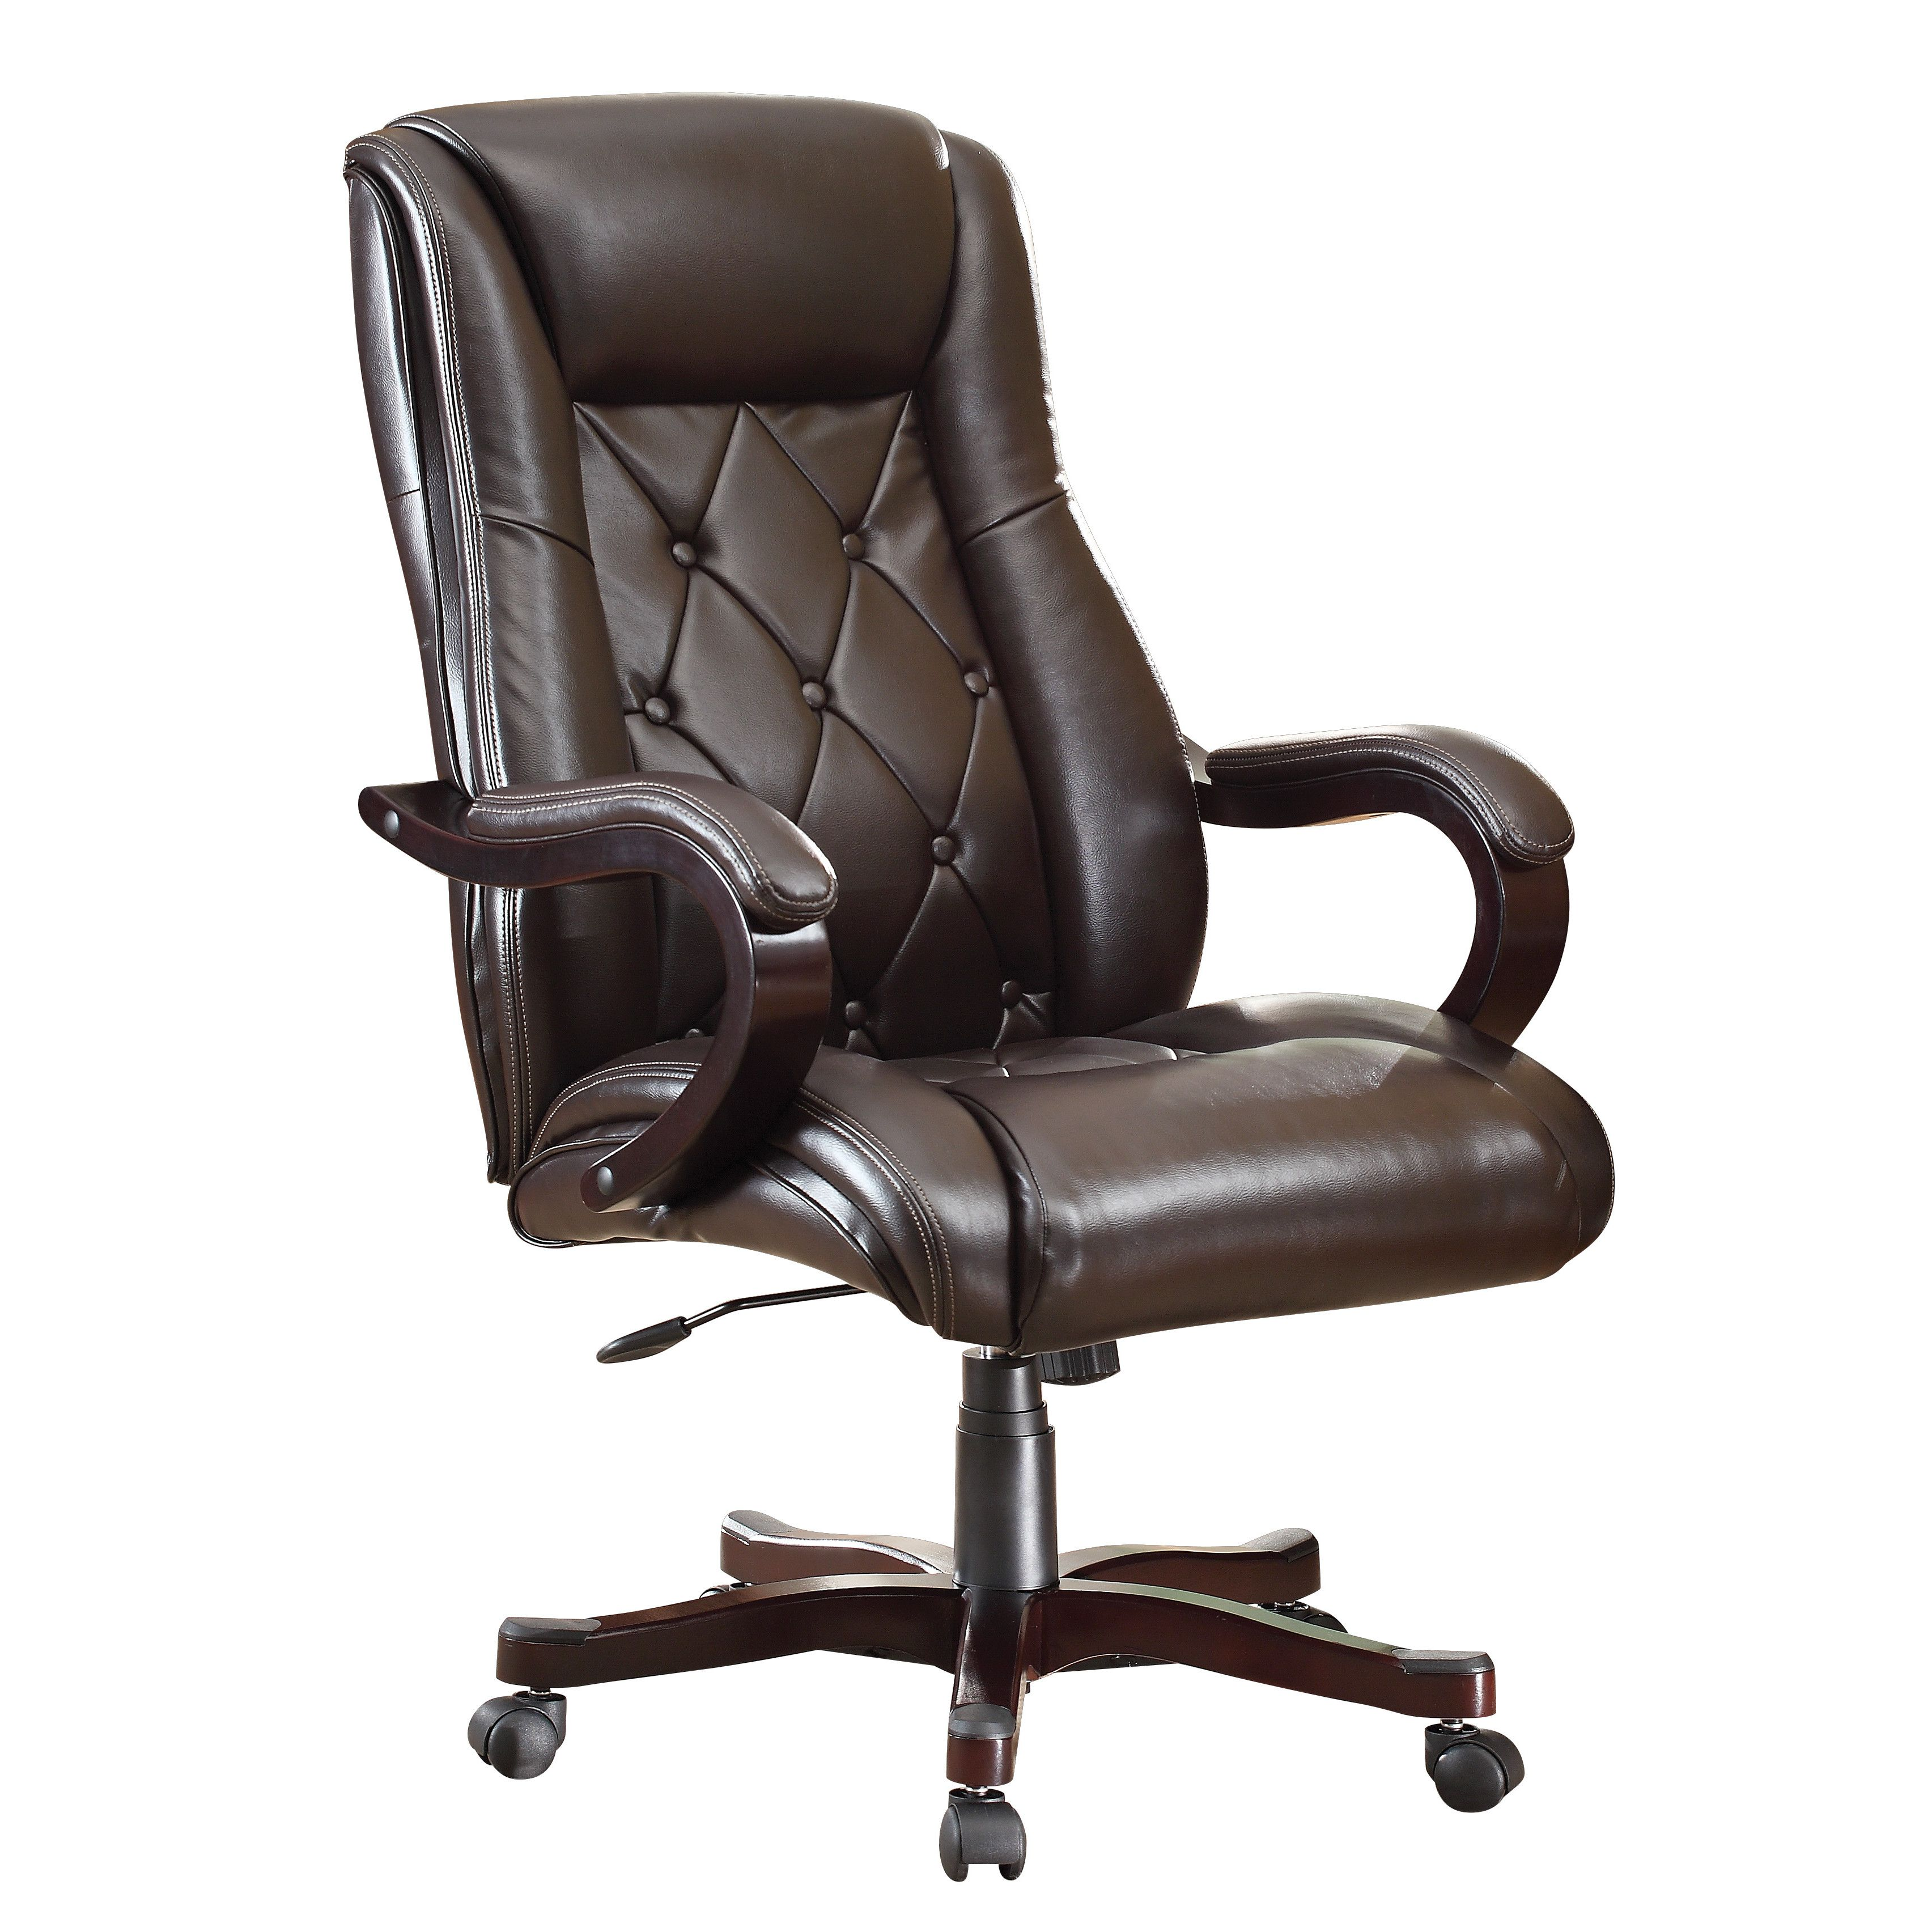 Executive Leather Office Chair Kreslo Mebel